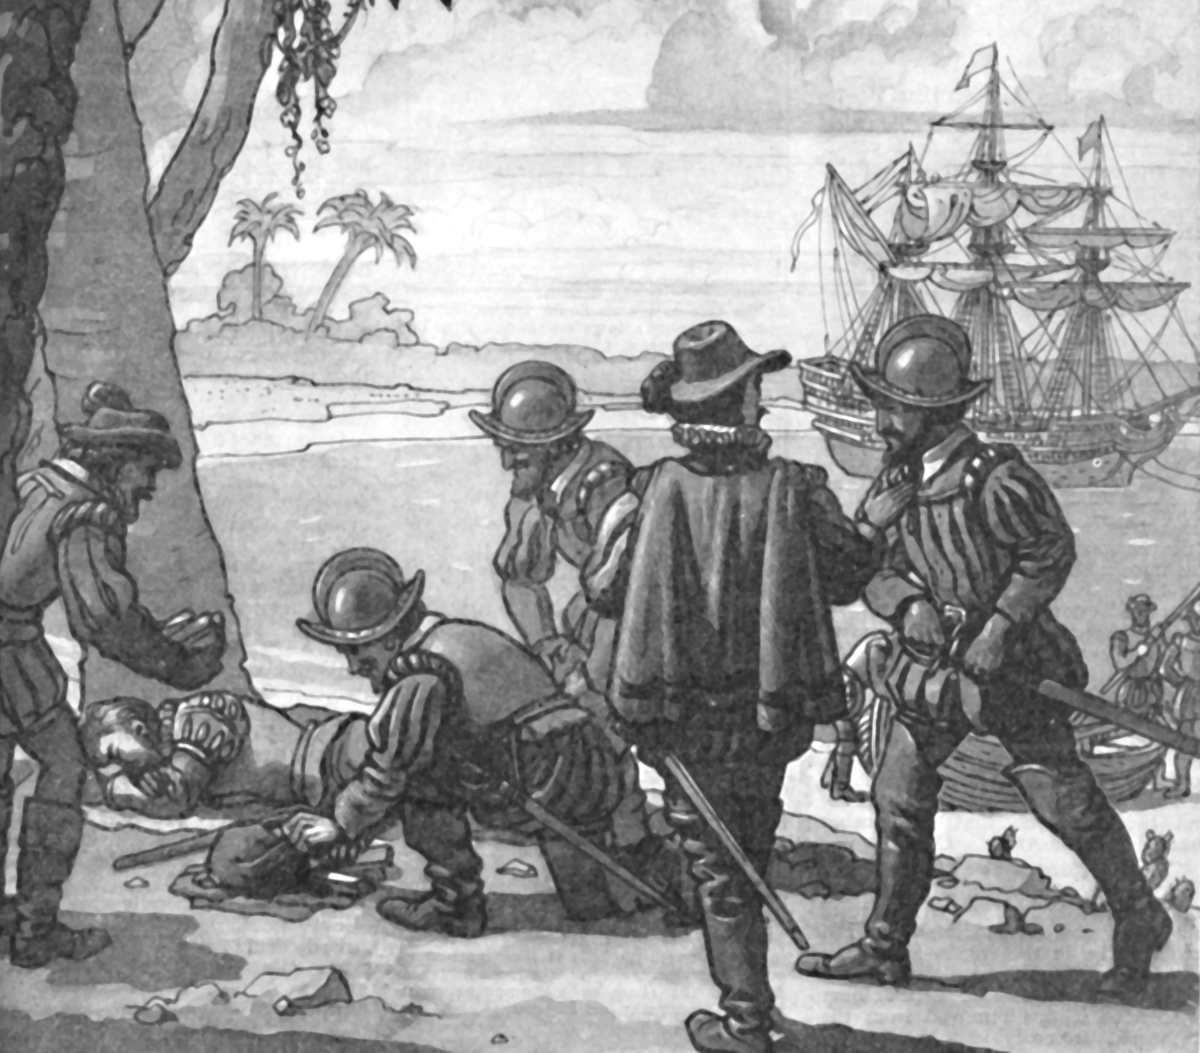 Illustrations of English privateers and Sir Francis Drake from 1934